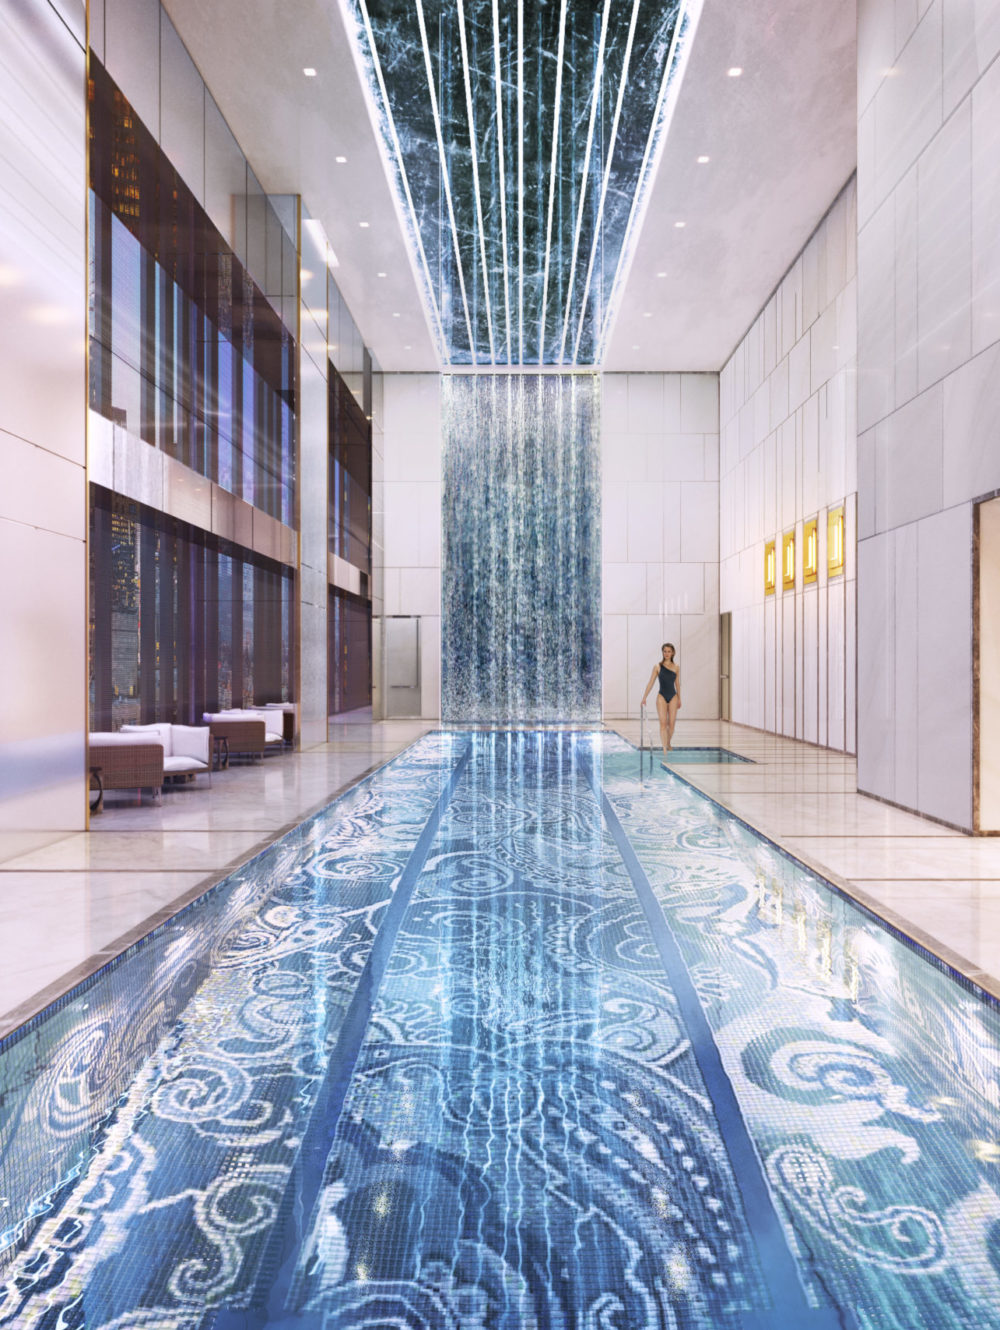 Interior view of Central Park Tower residence indoor pool with window view of NYC. Has white walls and high glowing ceiling.